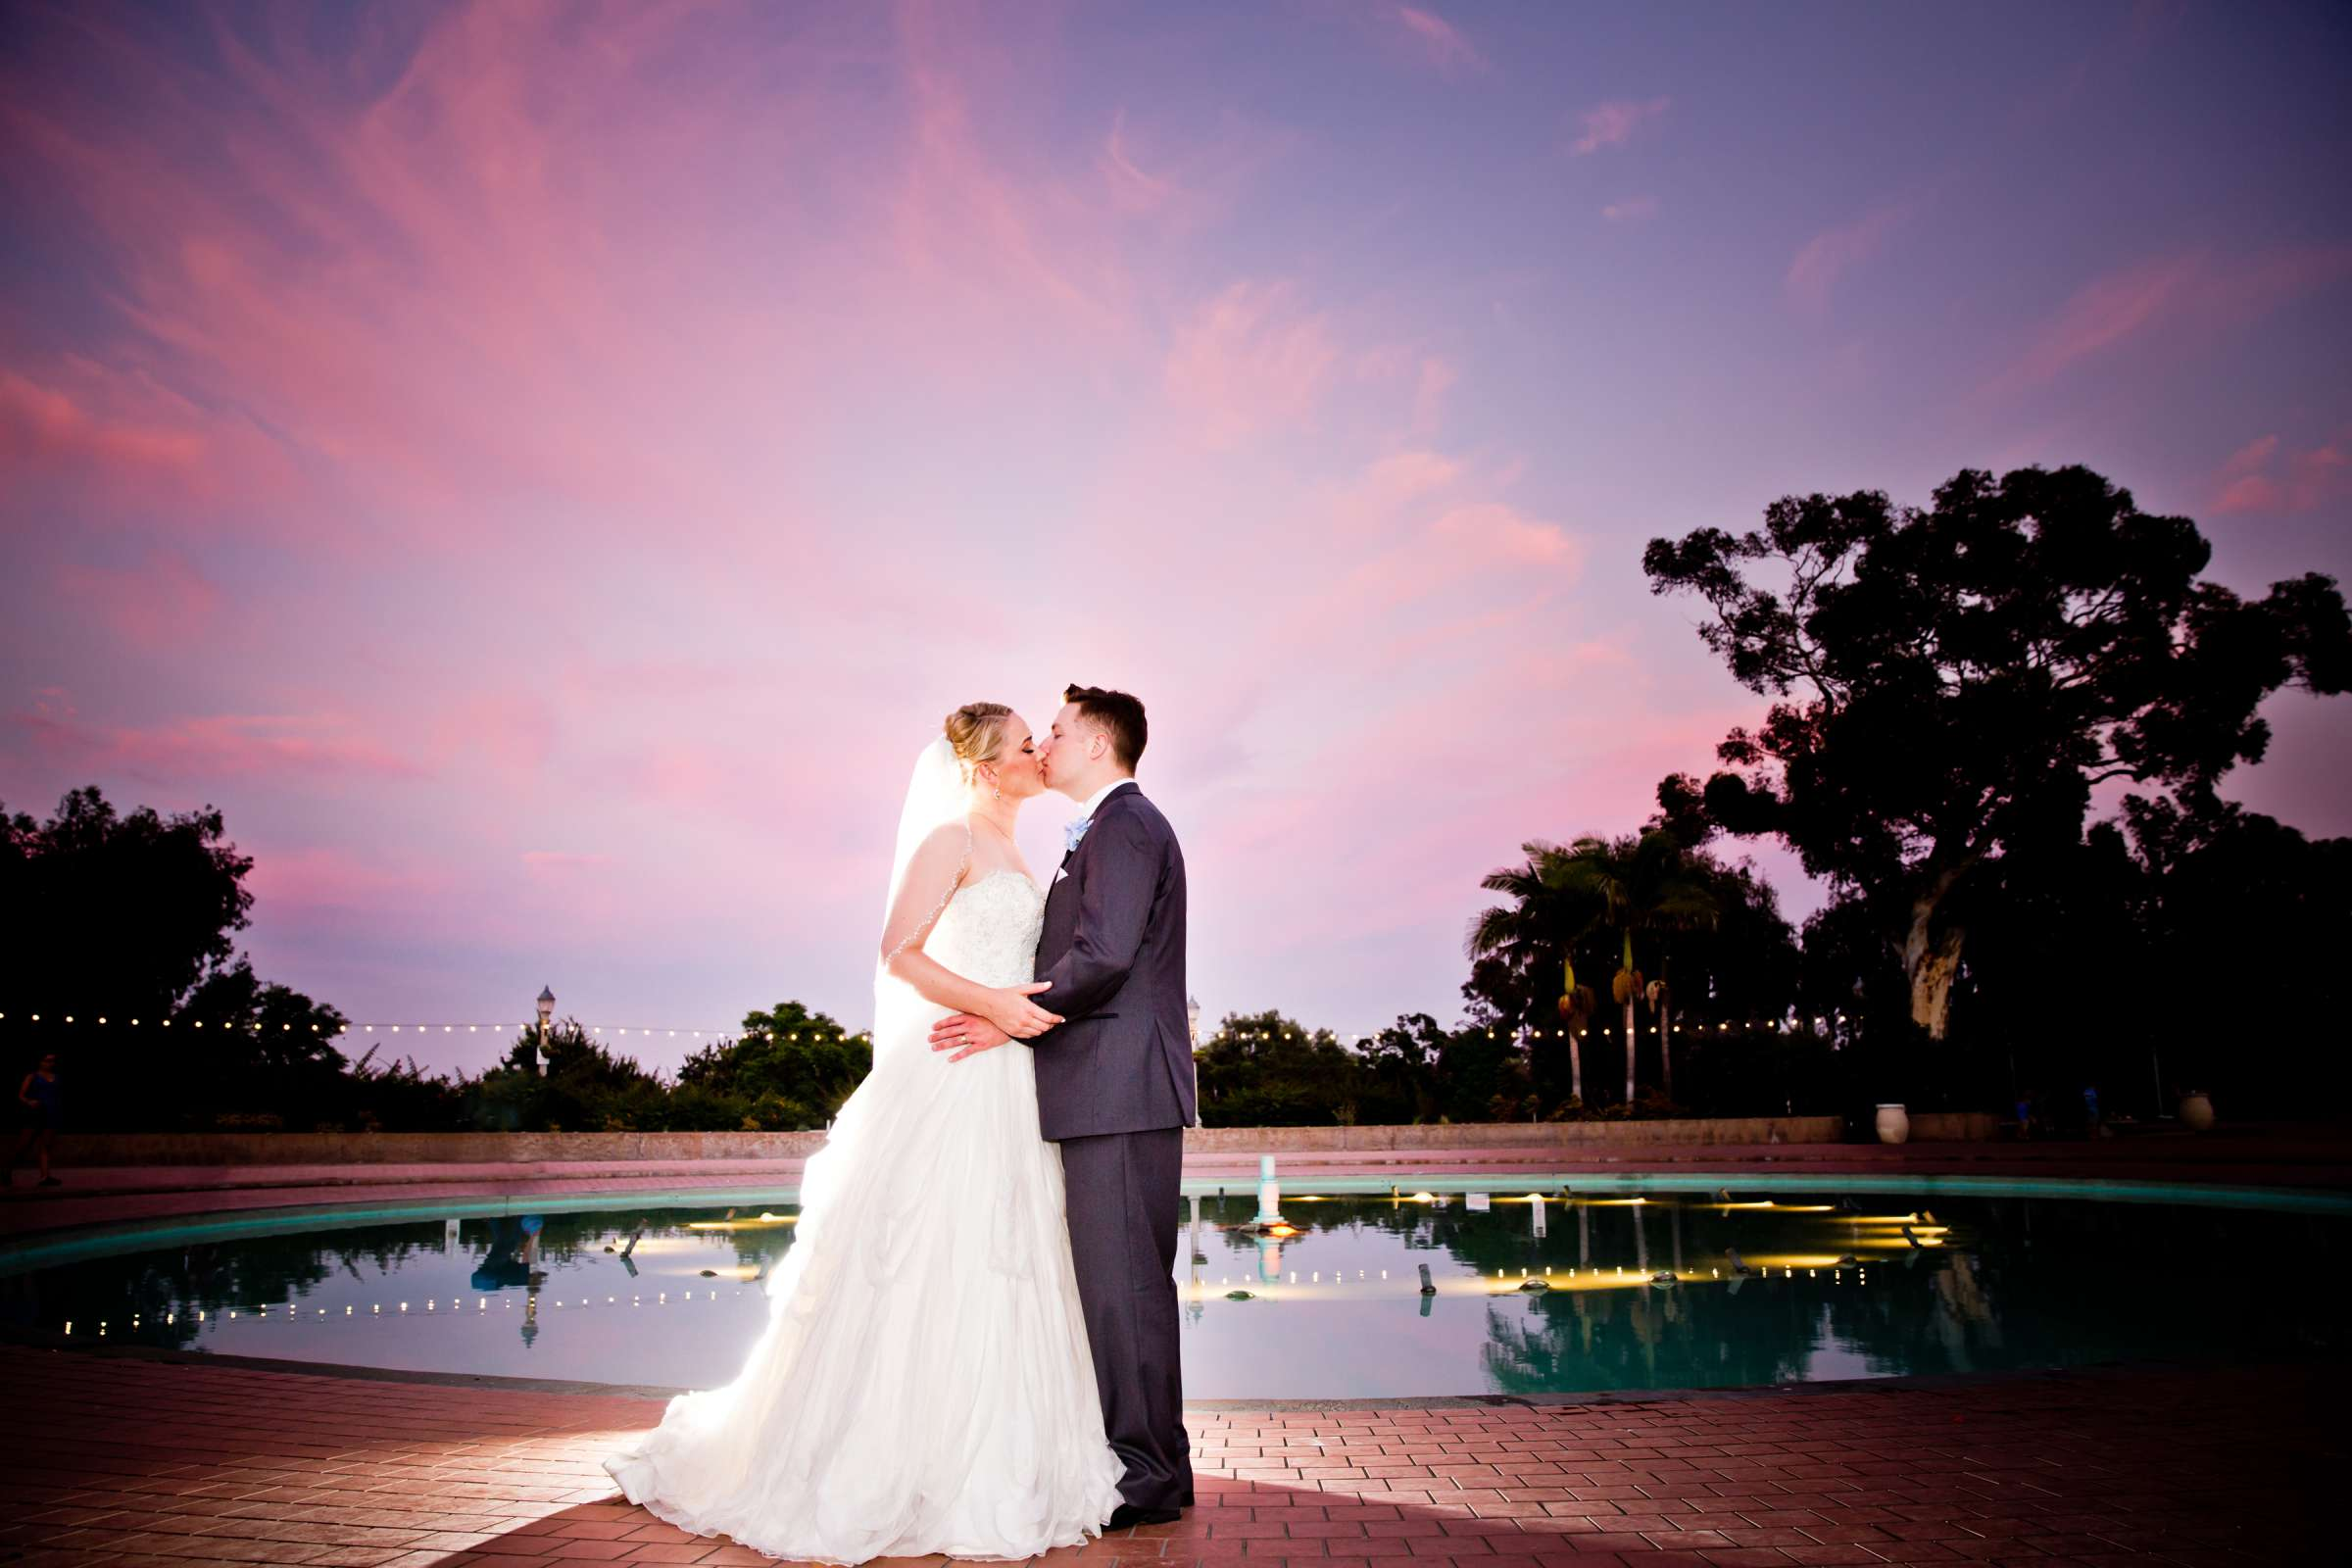 The Prado Wedding coordinated by Sublime Weddings, Ashley and Andrew Wedding Photo #17 by True Photography